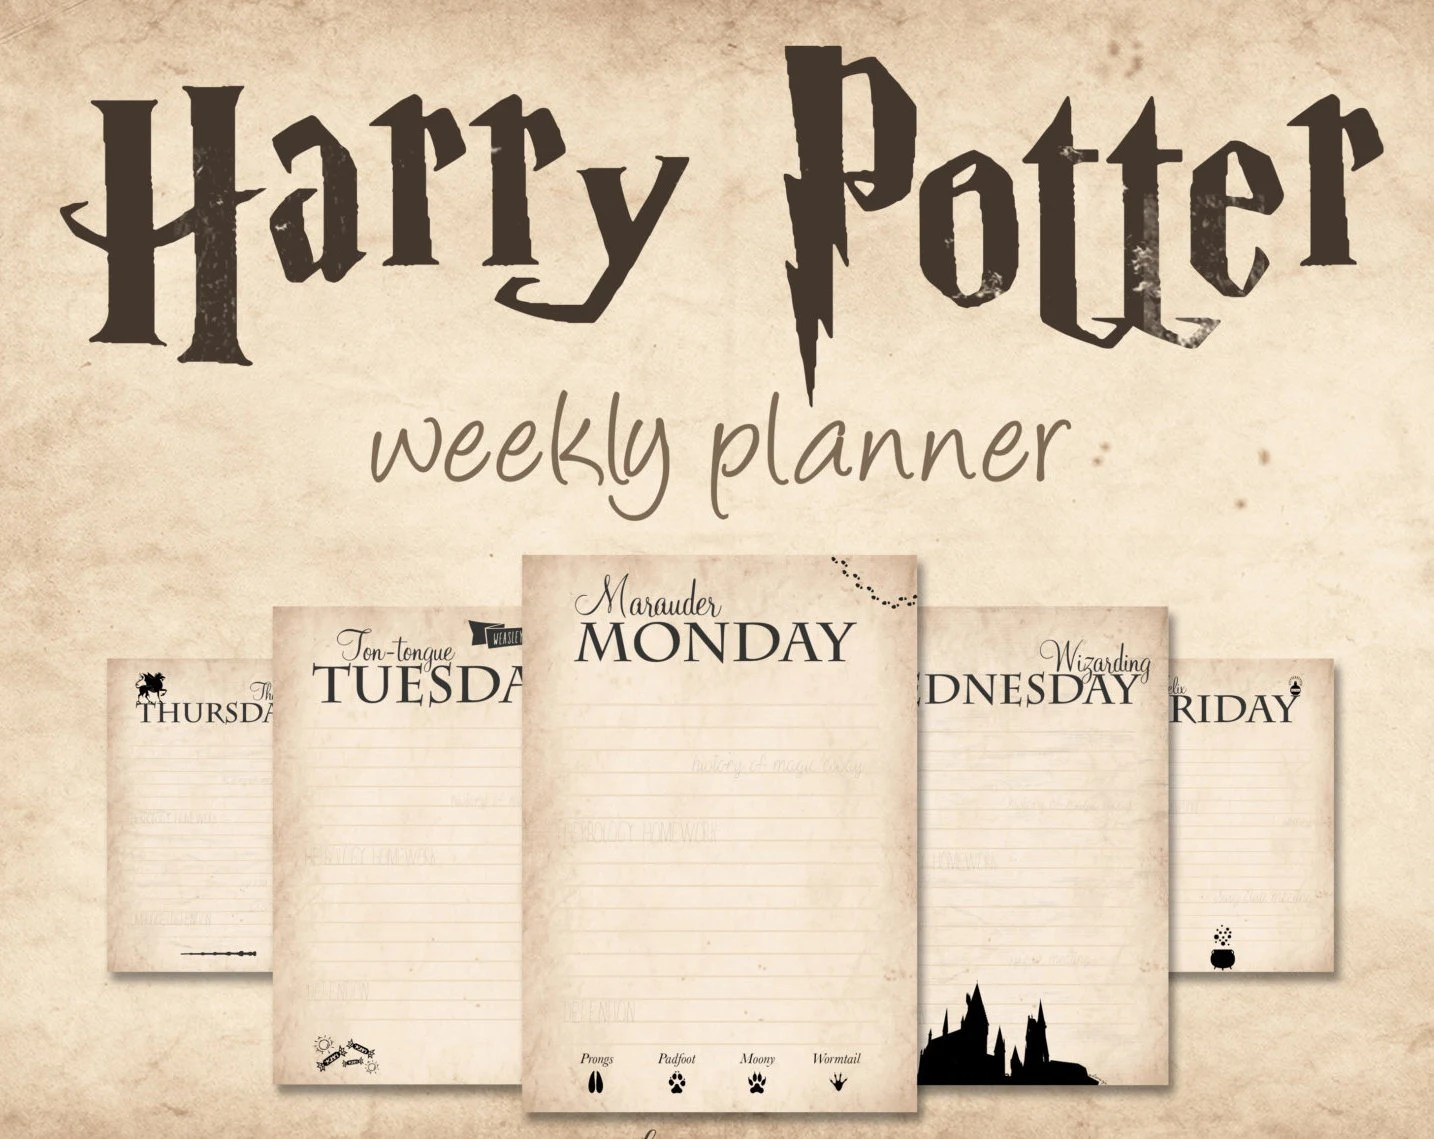 Harry Potter Weekly Planner